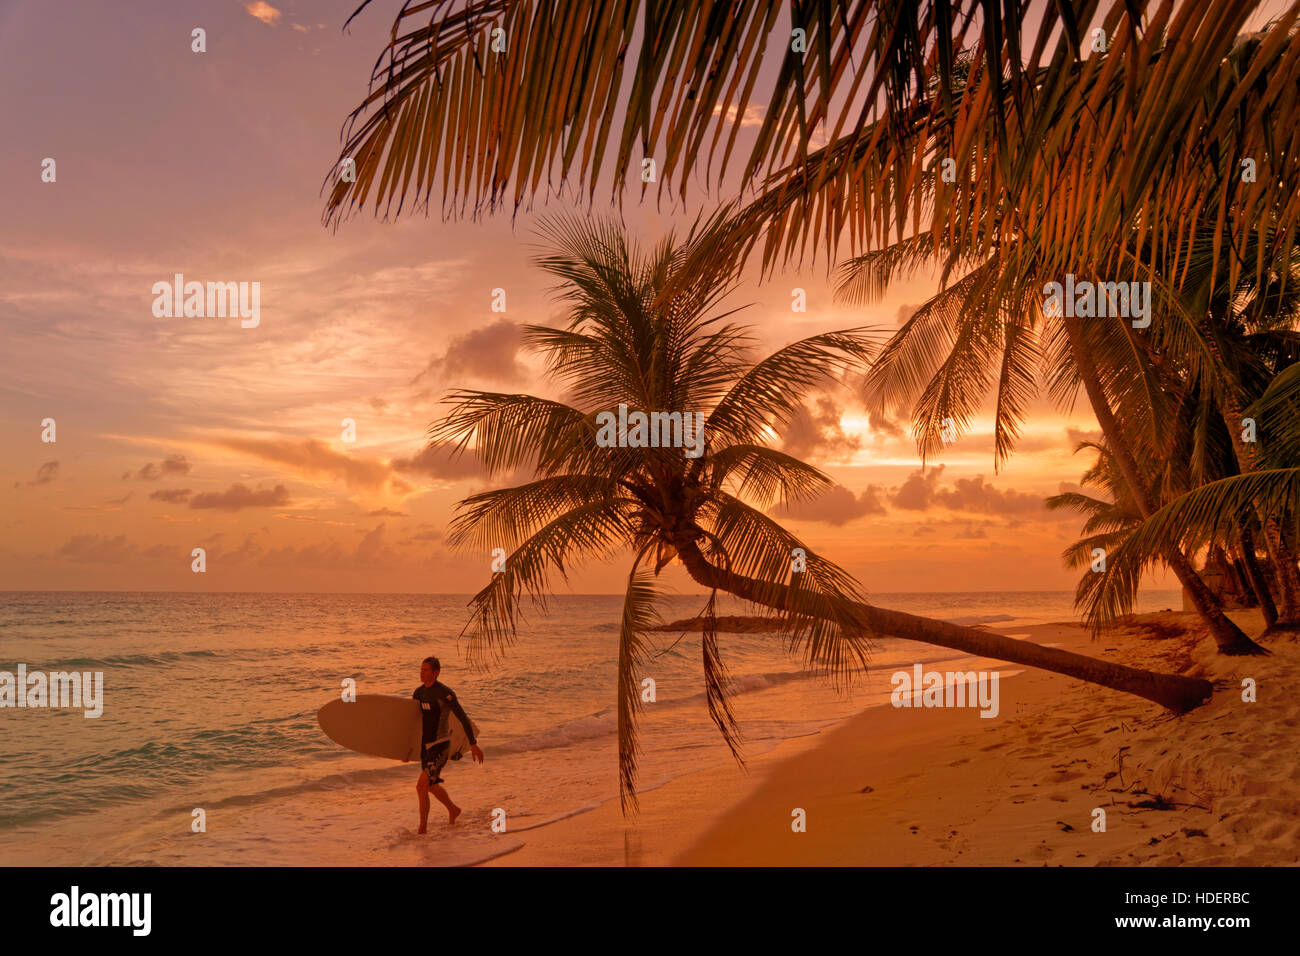 Surfer and Sunset at Dover Beach, St. Lawrence Gap, South Coast, Barbados, Caribbean. - Stock Image